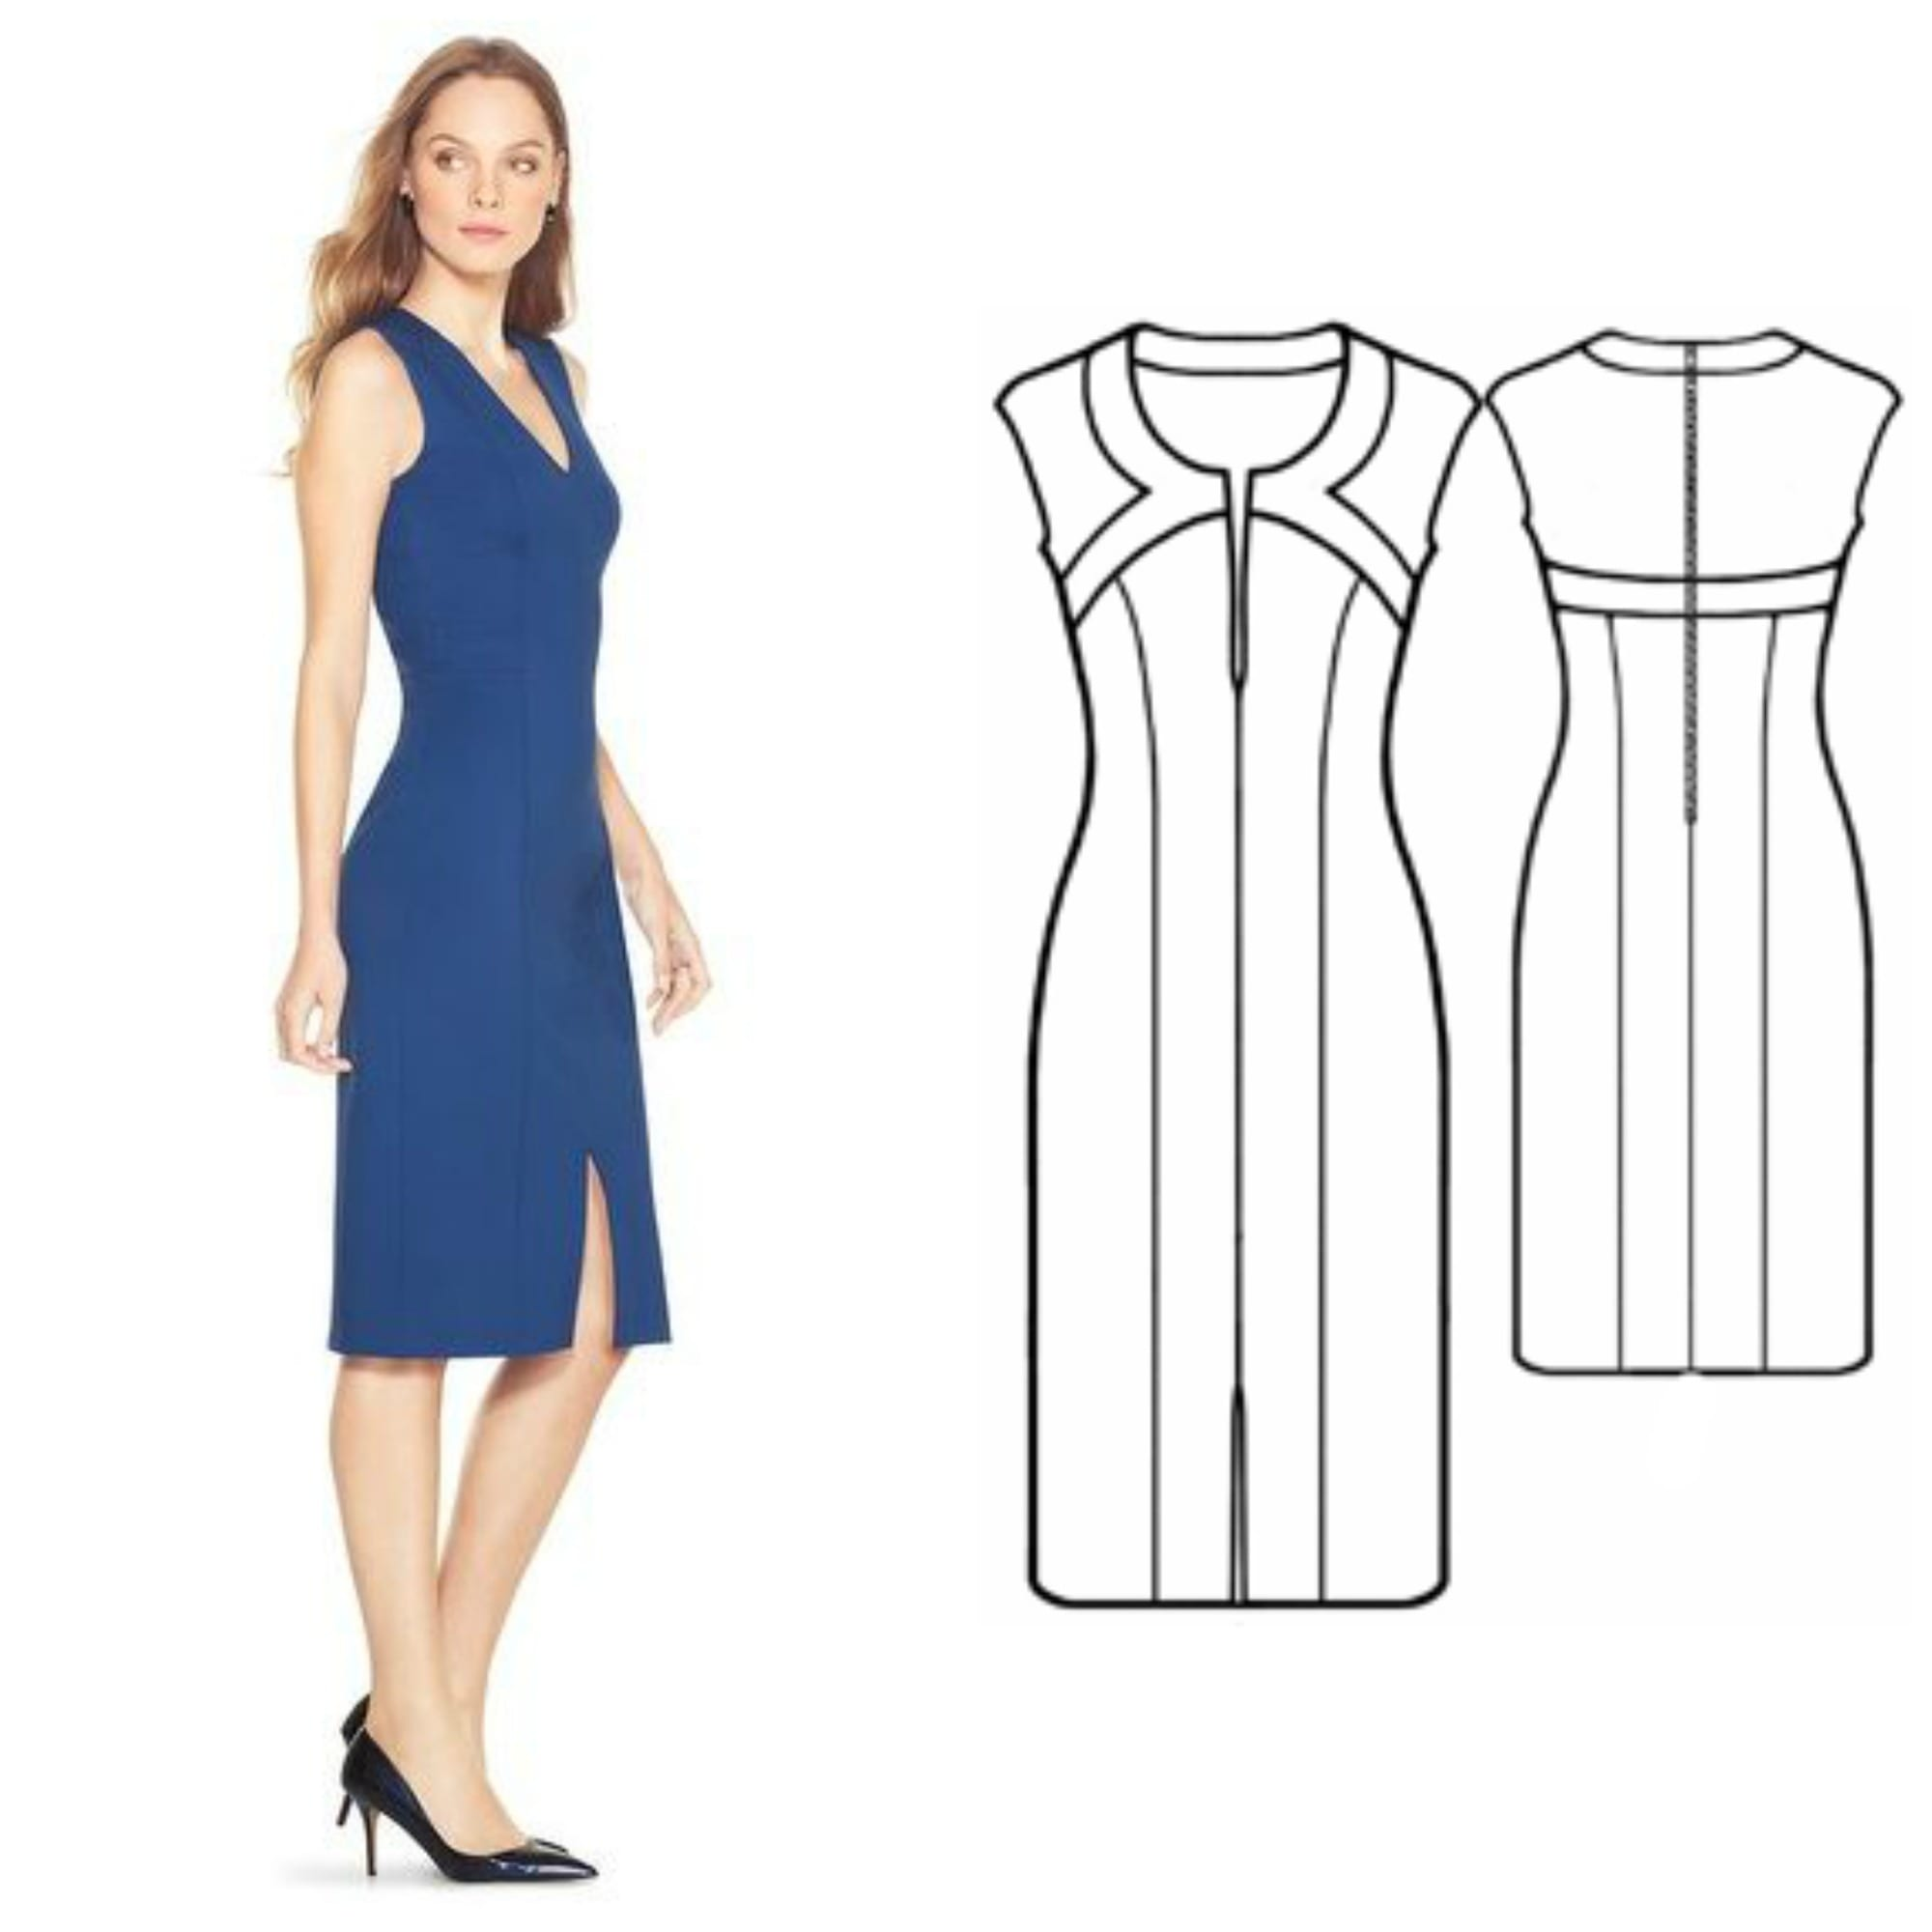 Free Dress Patterns: Shaped Trim Dress